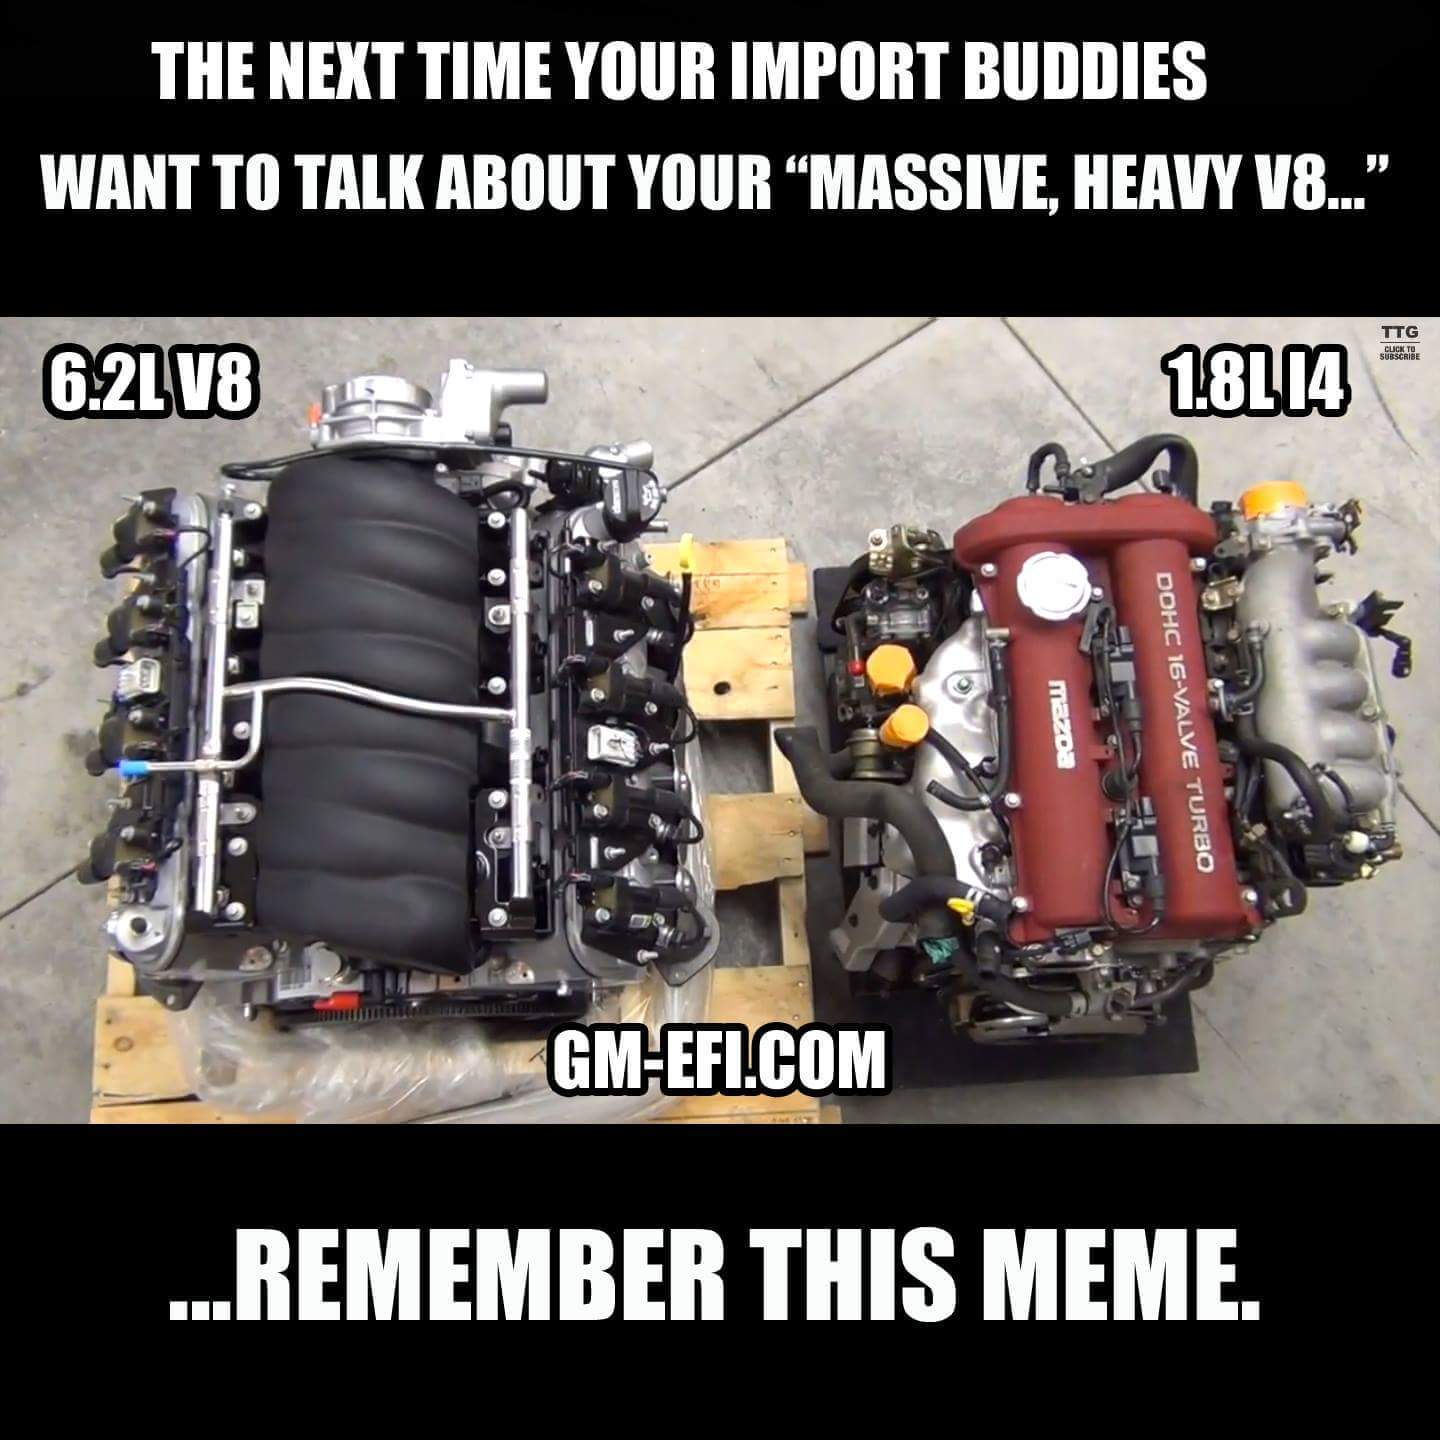 Shots fired  But really  V engines are crazy compact